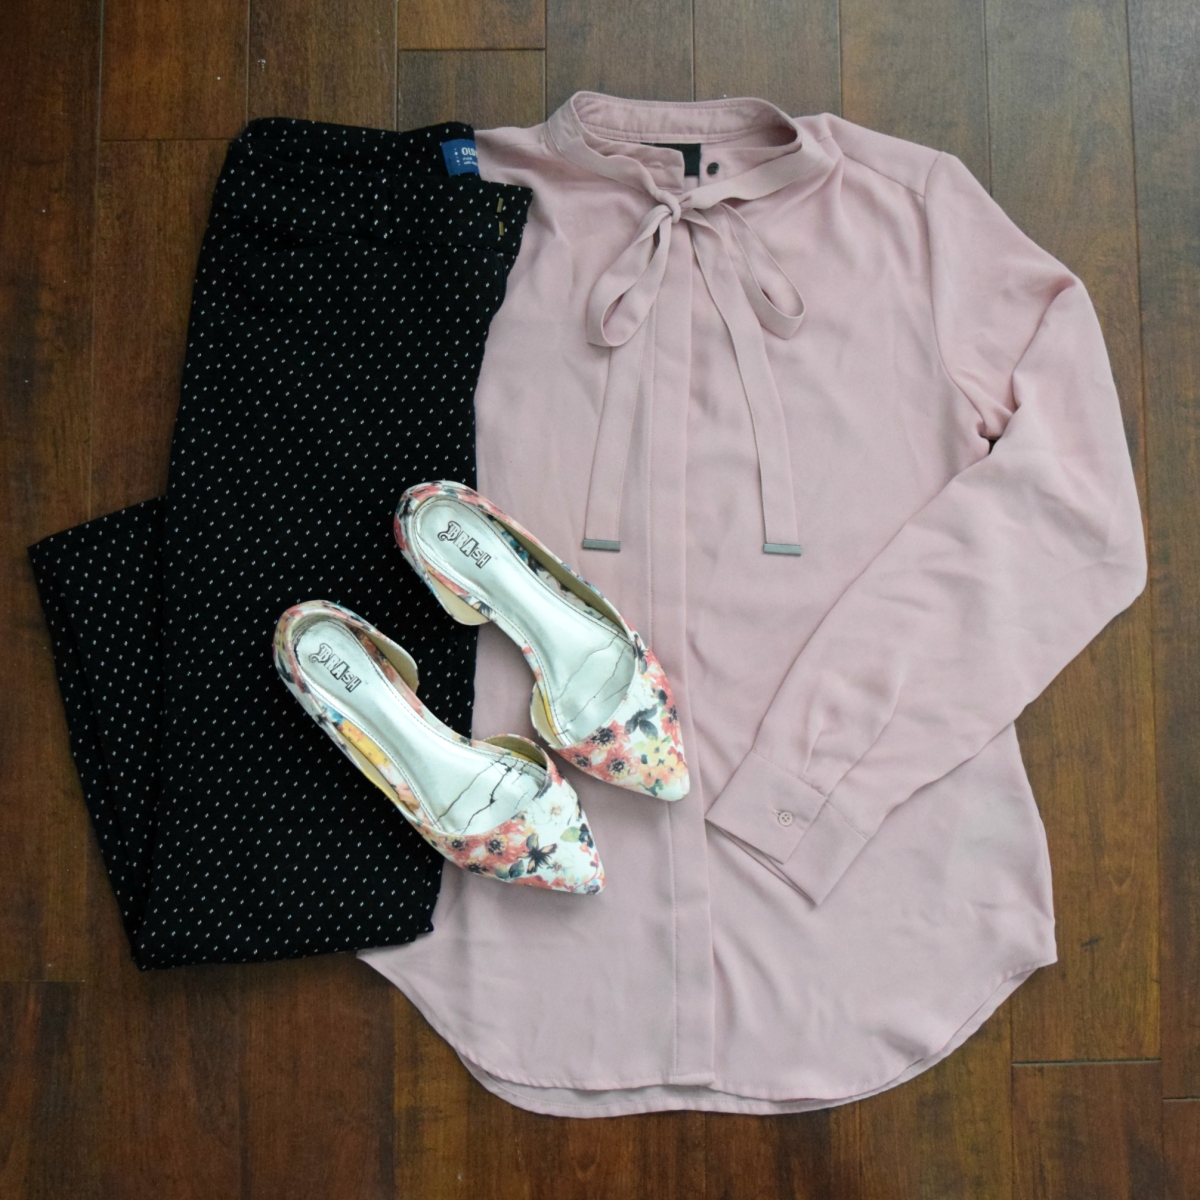 pink tie blouse, polka dot pants, and floral flats  www.pearlsandsportsbas.com 